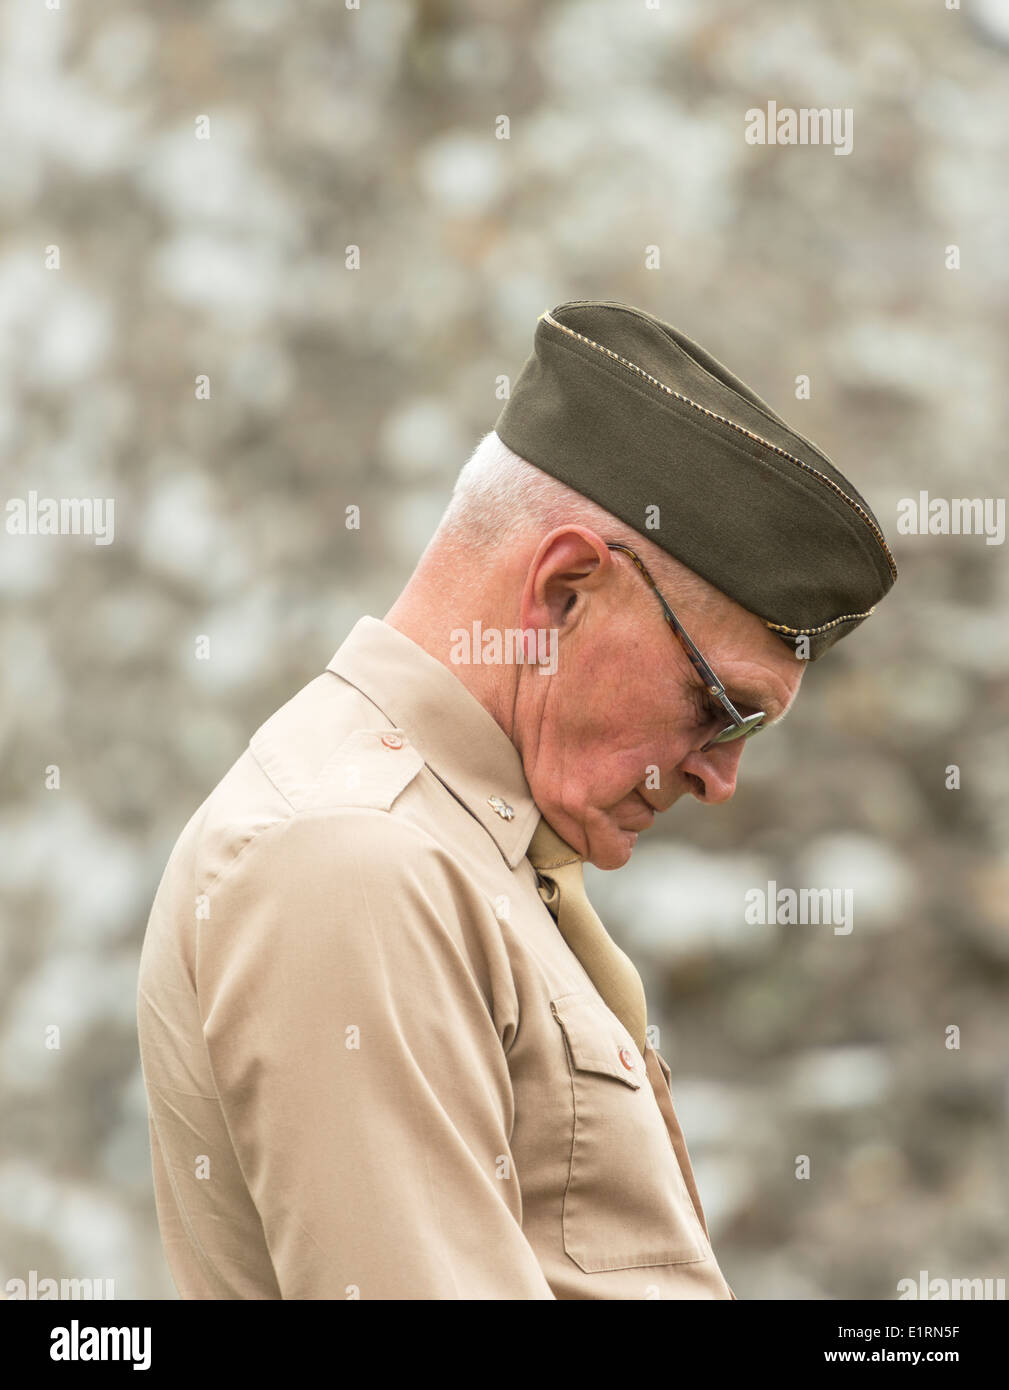 Man dressed as a World War 2 American serviceman bows his head in prayer - Stock Image